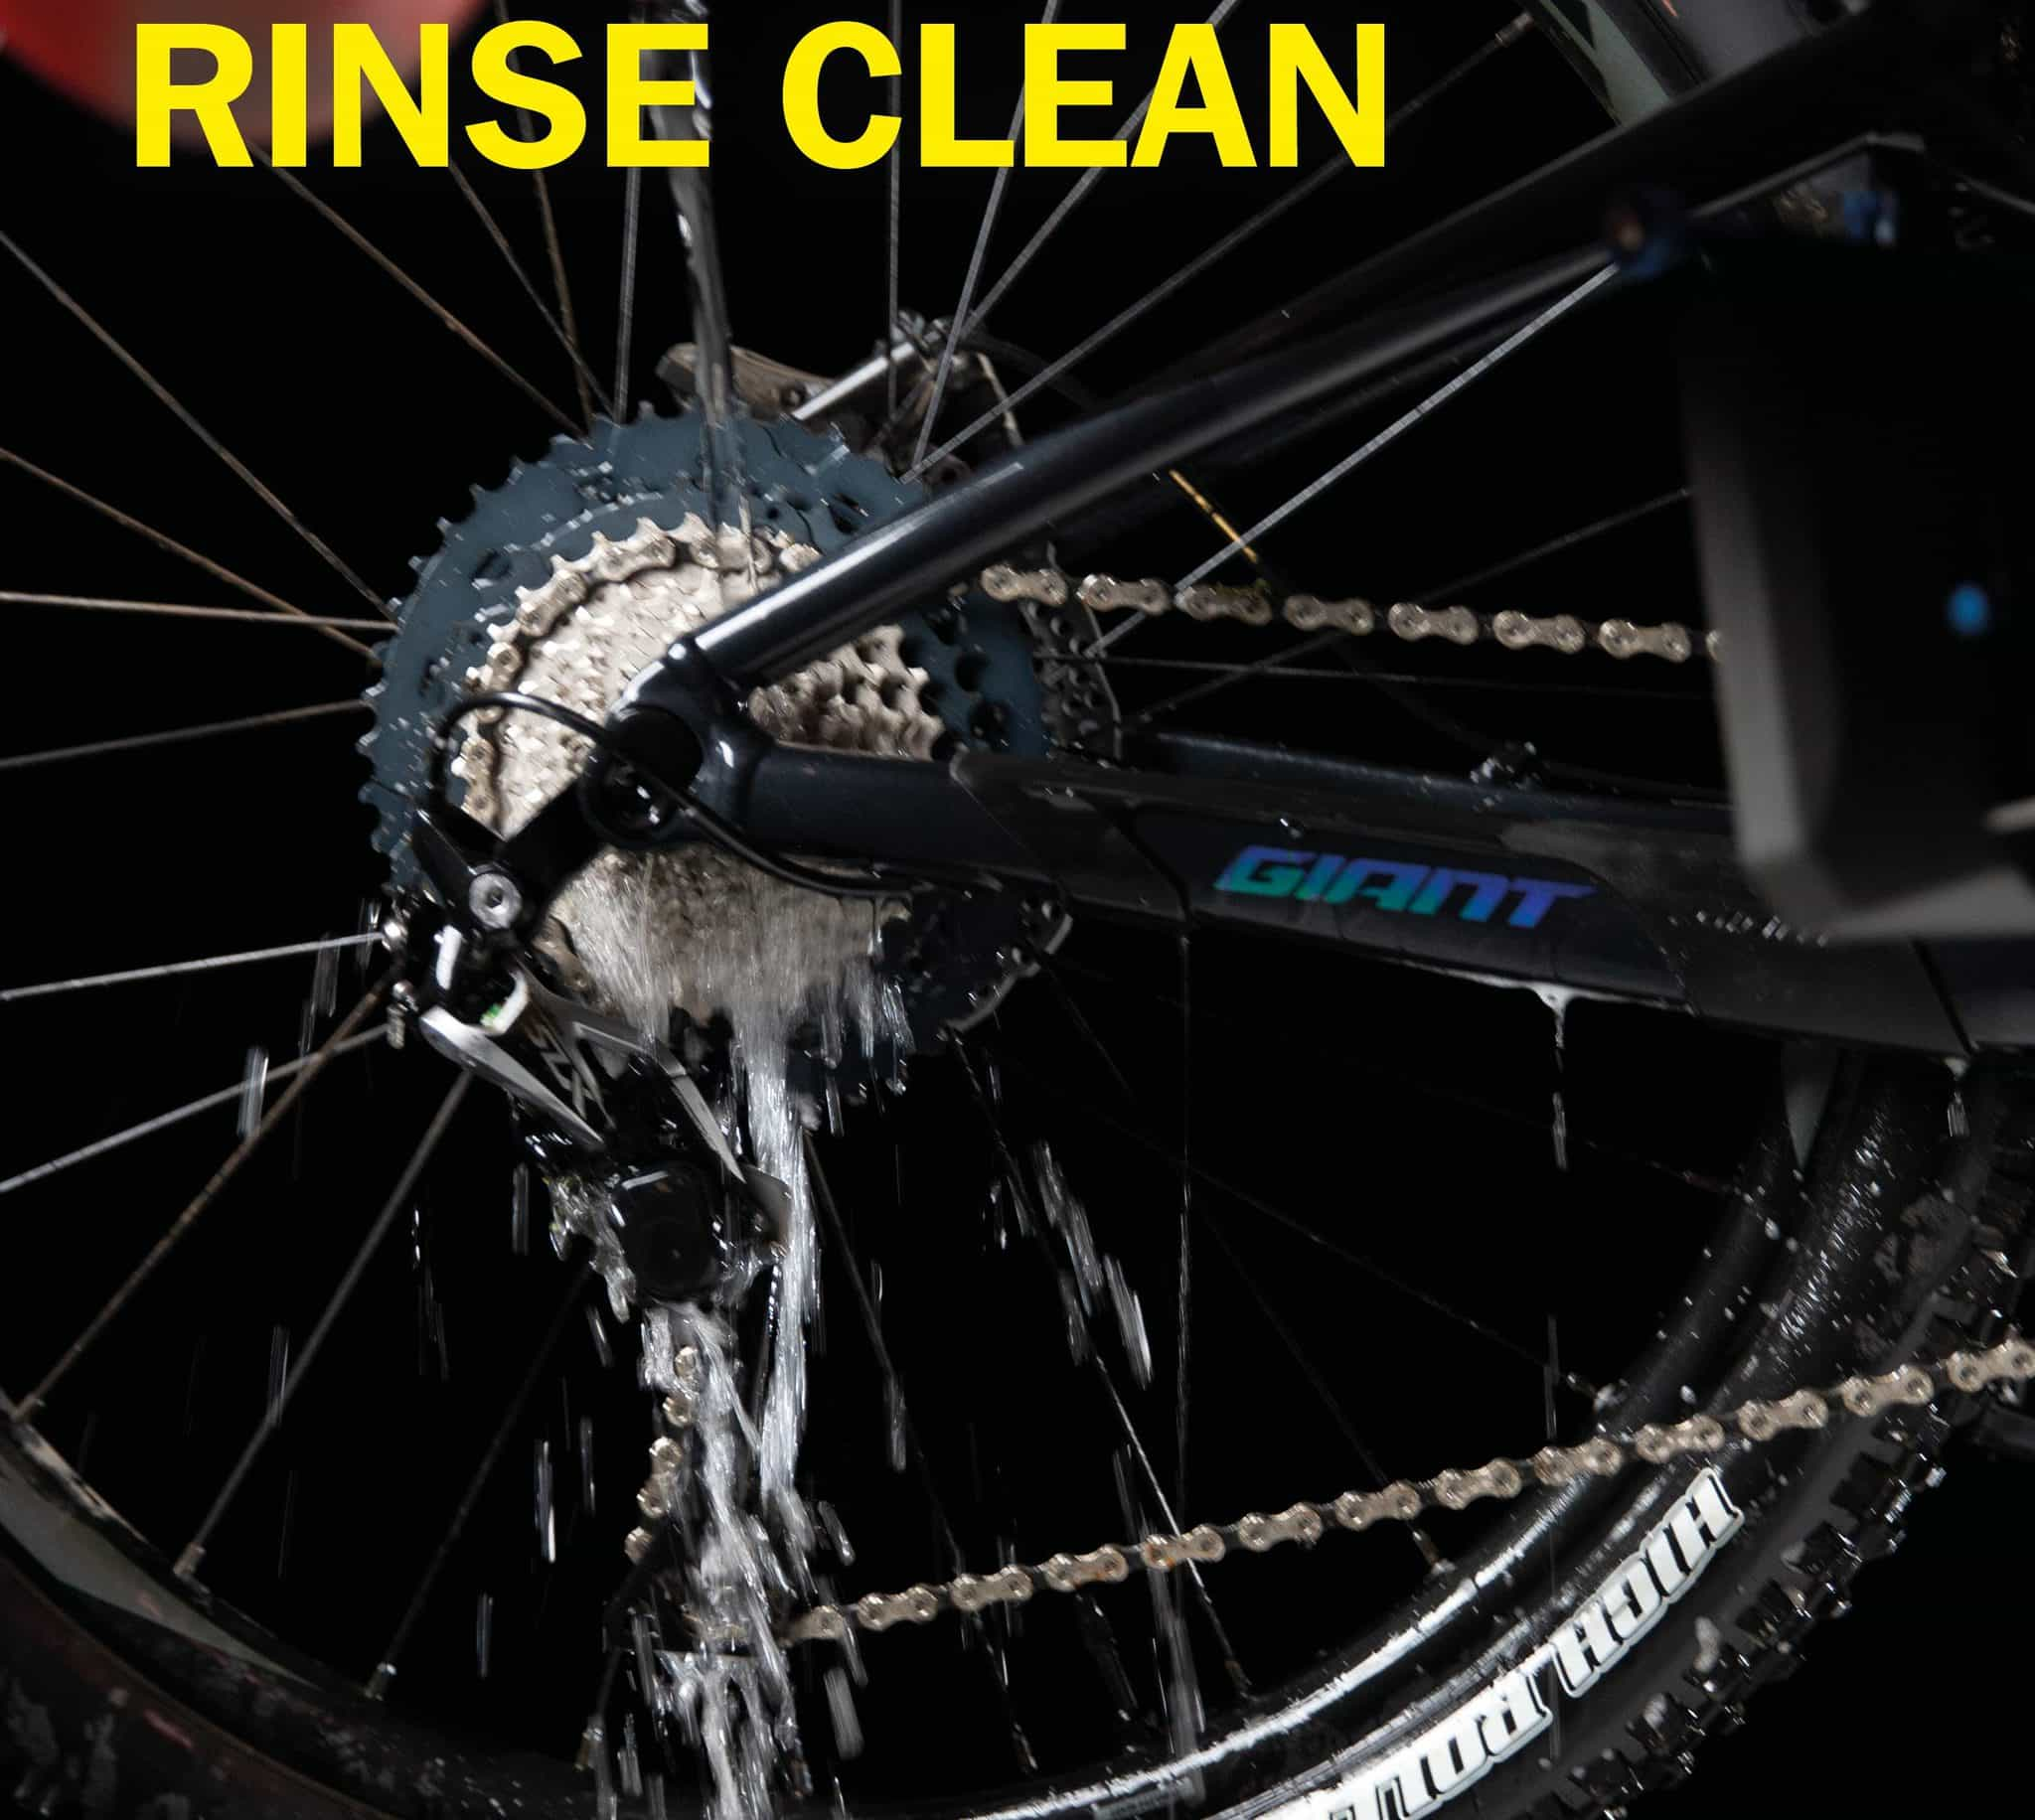 wd40 bike degreaser how to use part 8